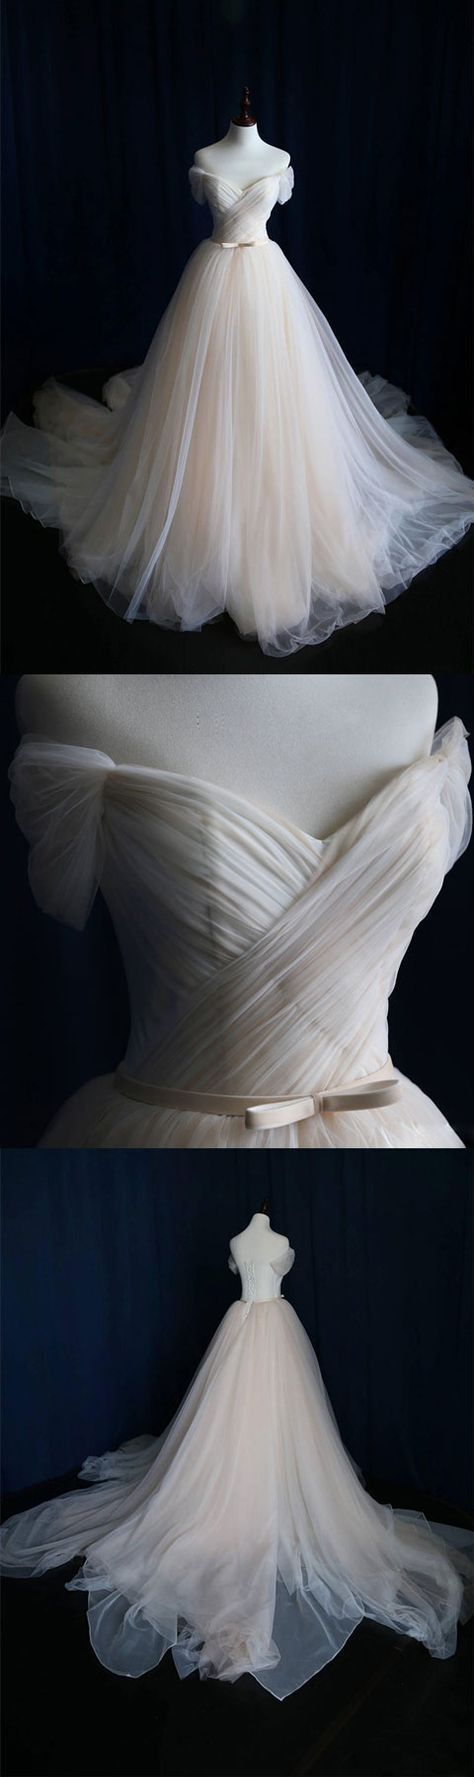 I so want this dress.Light champagne tulle long wedding dress or prom dress.Grace Kelly/Audrey Hepburn graceful, floaty look.Elegance personified! (scheduled via http://www.tailwindapp.com?utm_source=pinterest&utm_medium=twpin&utm_content=post190483941&utm_campaign=scheduler_attribution)